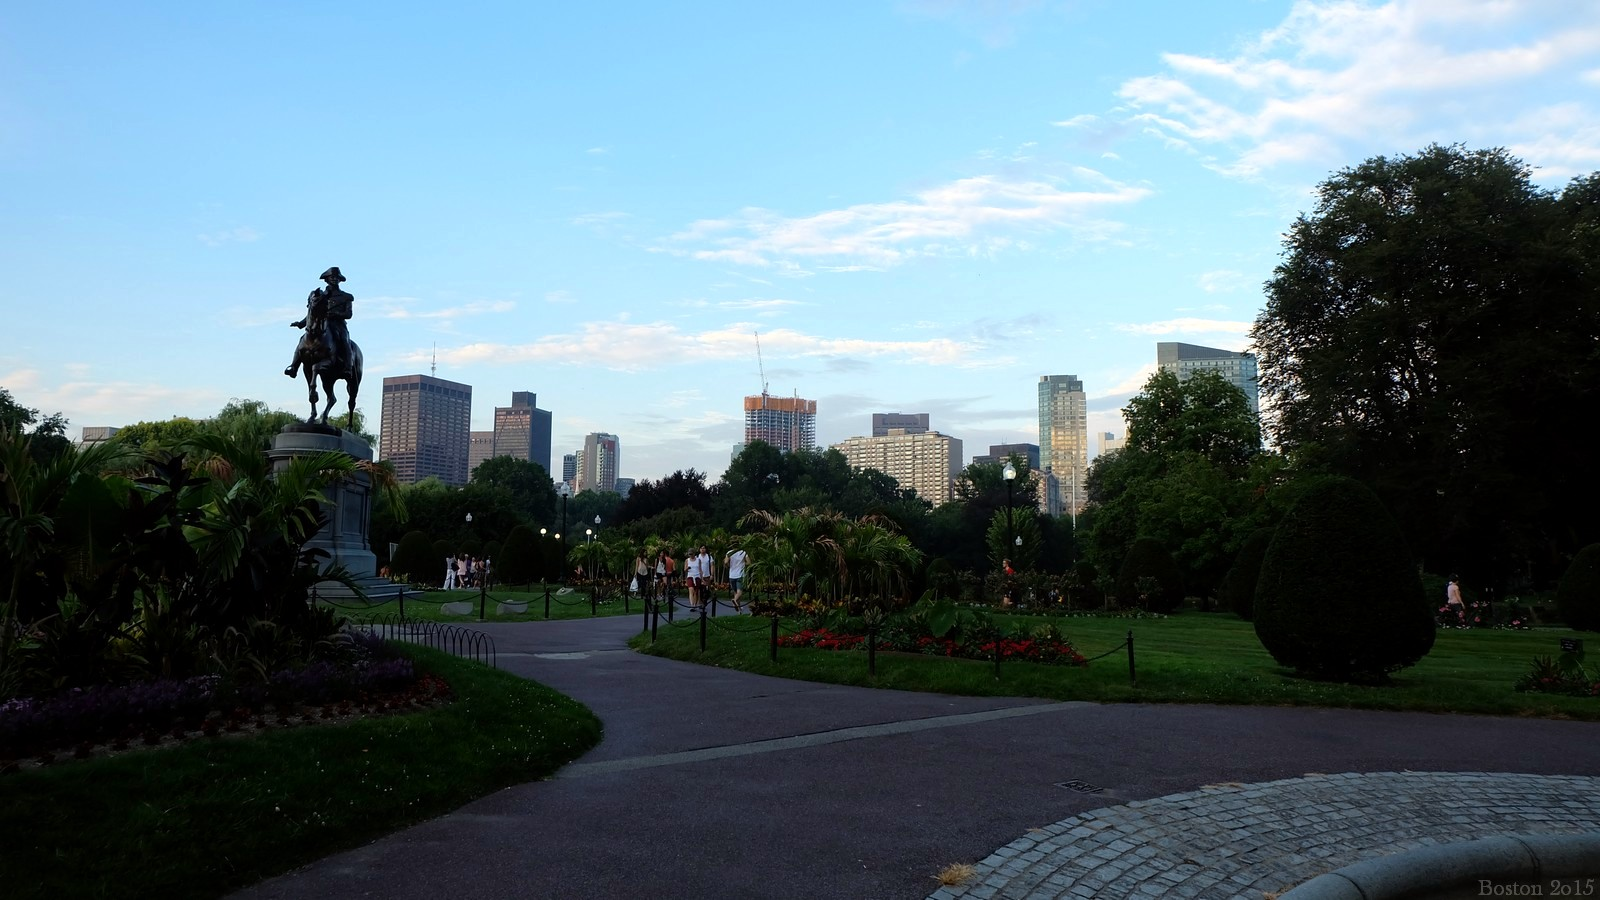 Public Garden, Boston, MA, USA